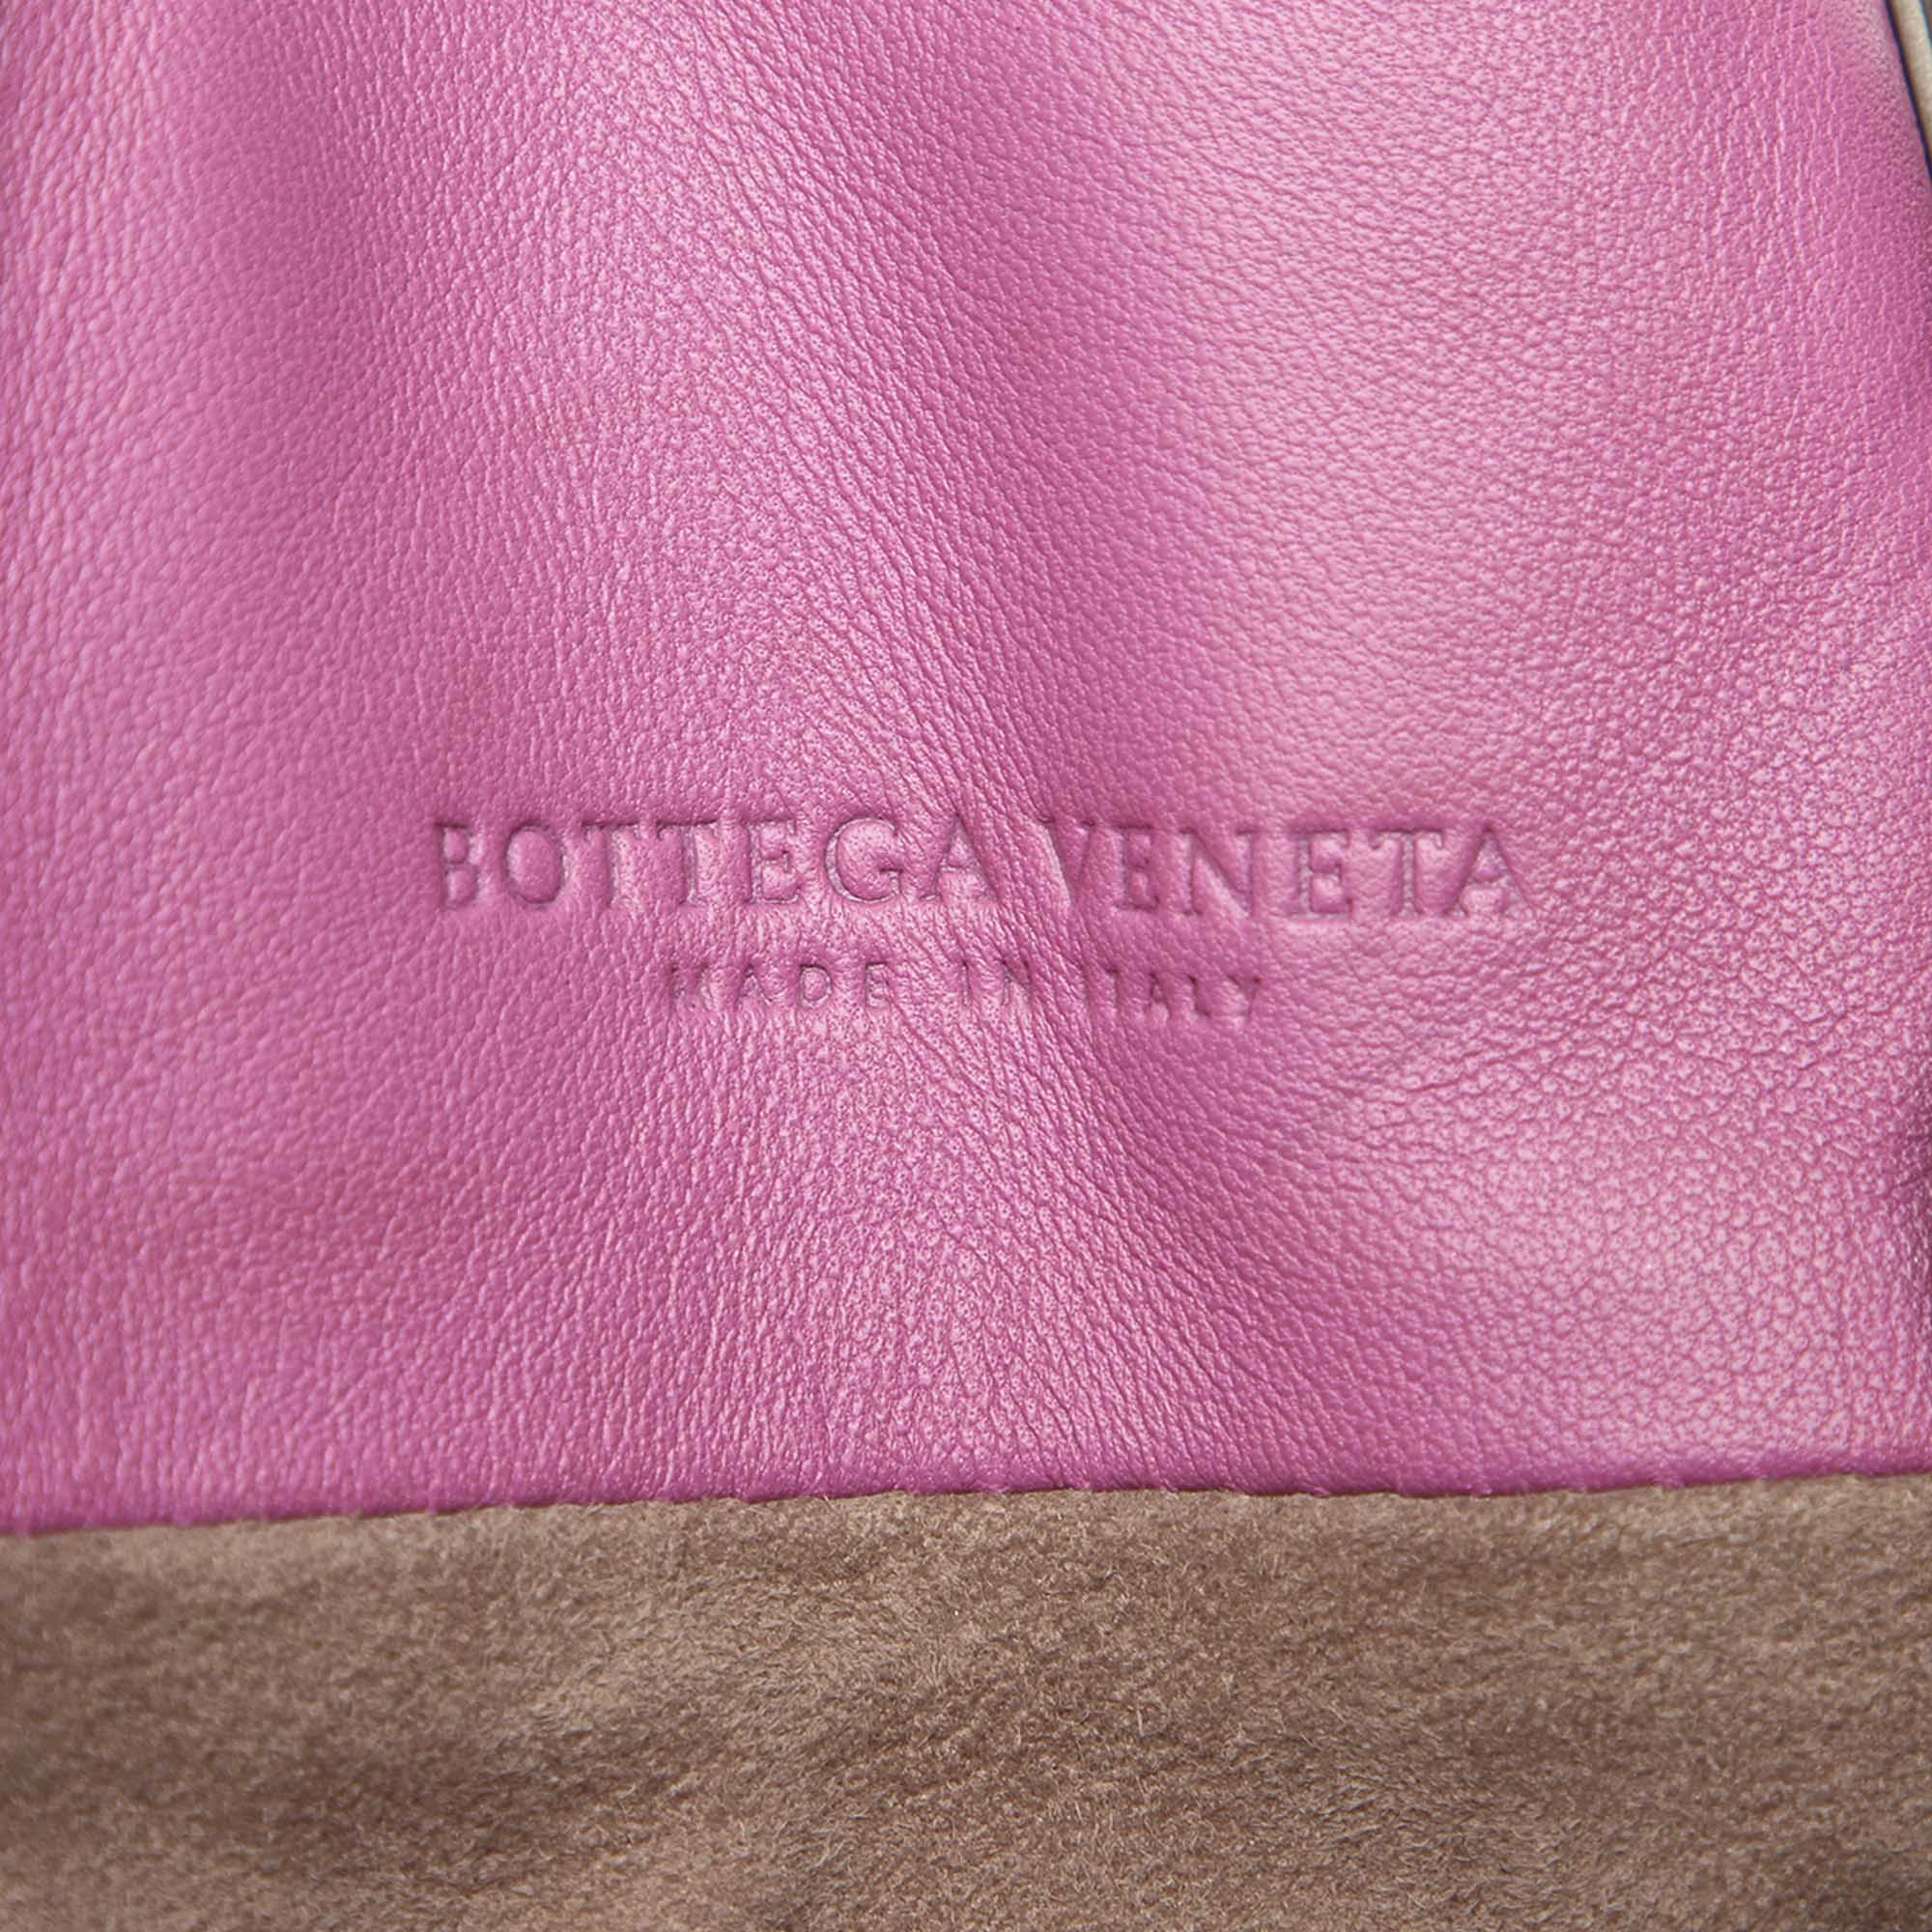 Bottega Veneta Pink Intrecciato Leather Satchel